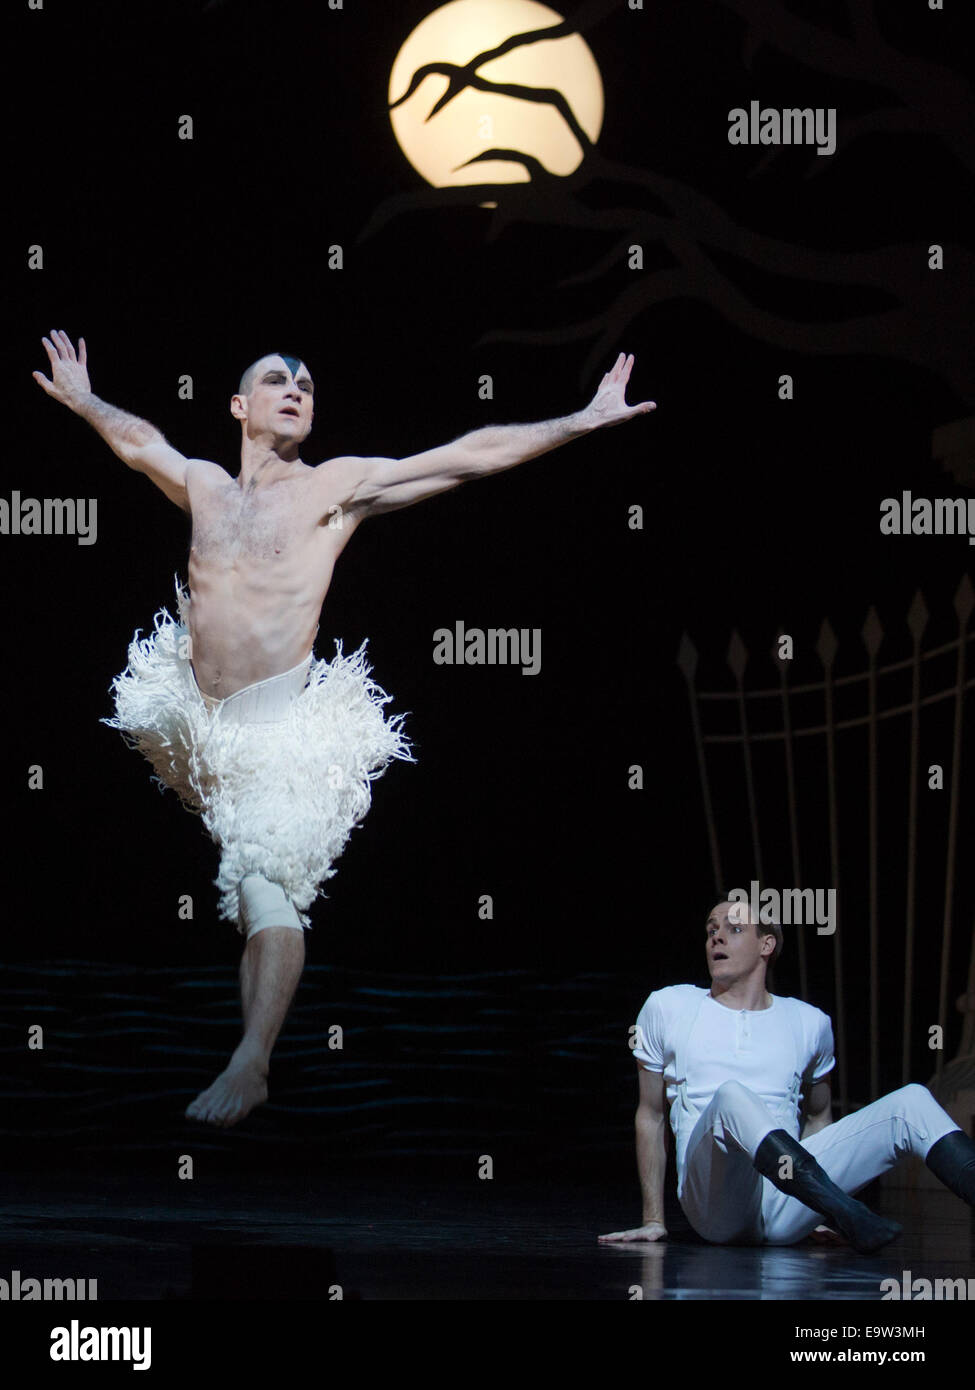 Matthew Bourne's Swan Lake, Sadler's Wells Theatre, London. Jonathan Ollivier as The Swan and Sam Archer - Stock Image